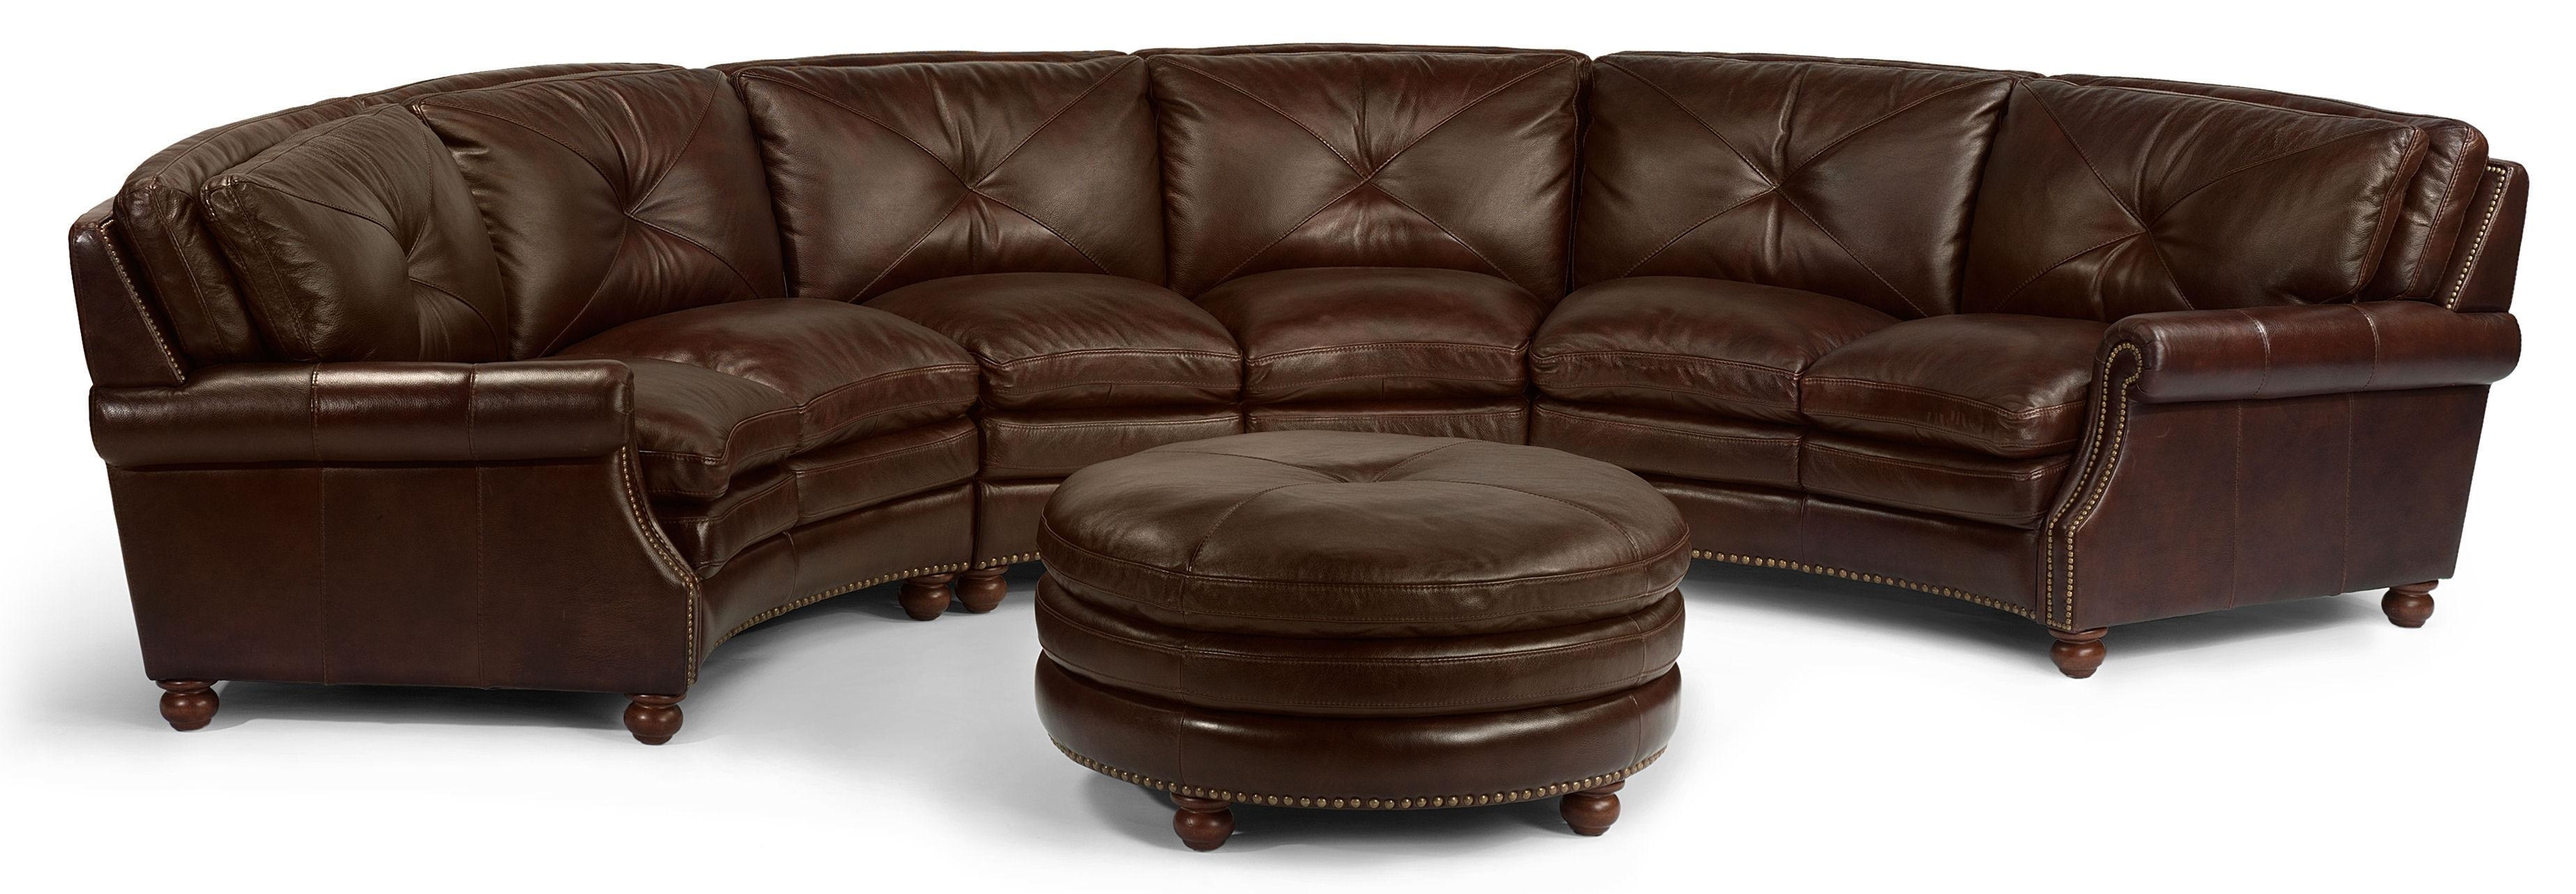 Flexsteel Latitudes Suffolk Round Sectional Sofa With Nailhead Intended For Round Sectional Sofa (Image 5 of 20)